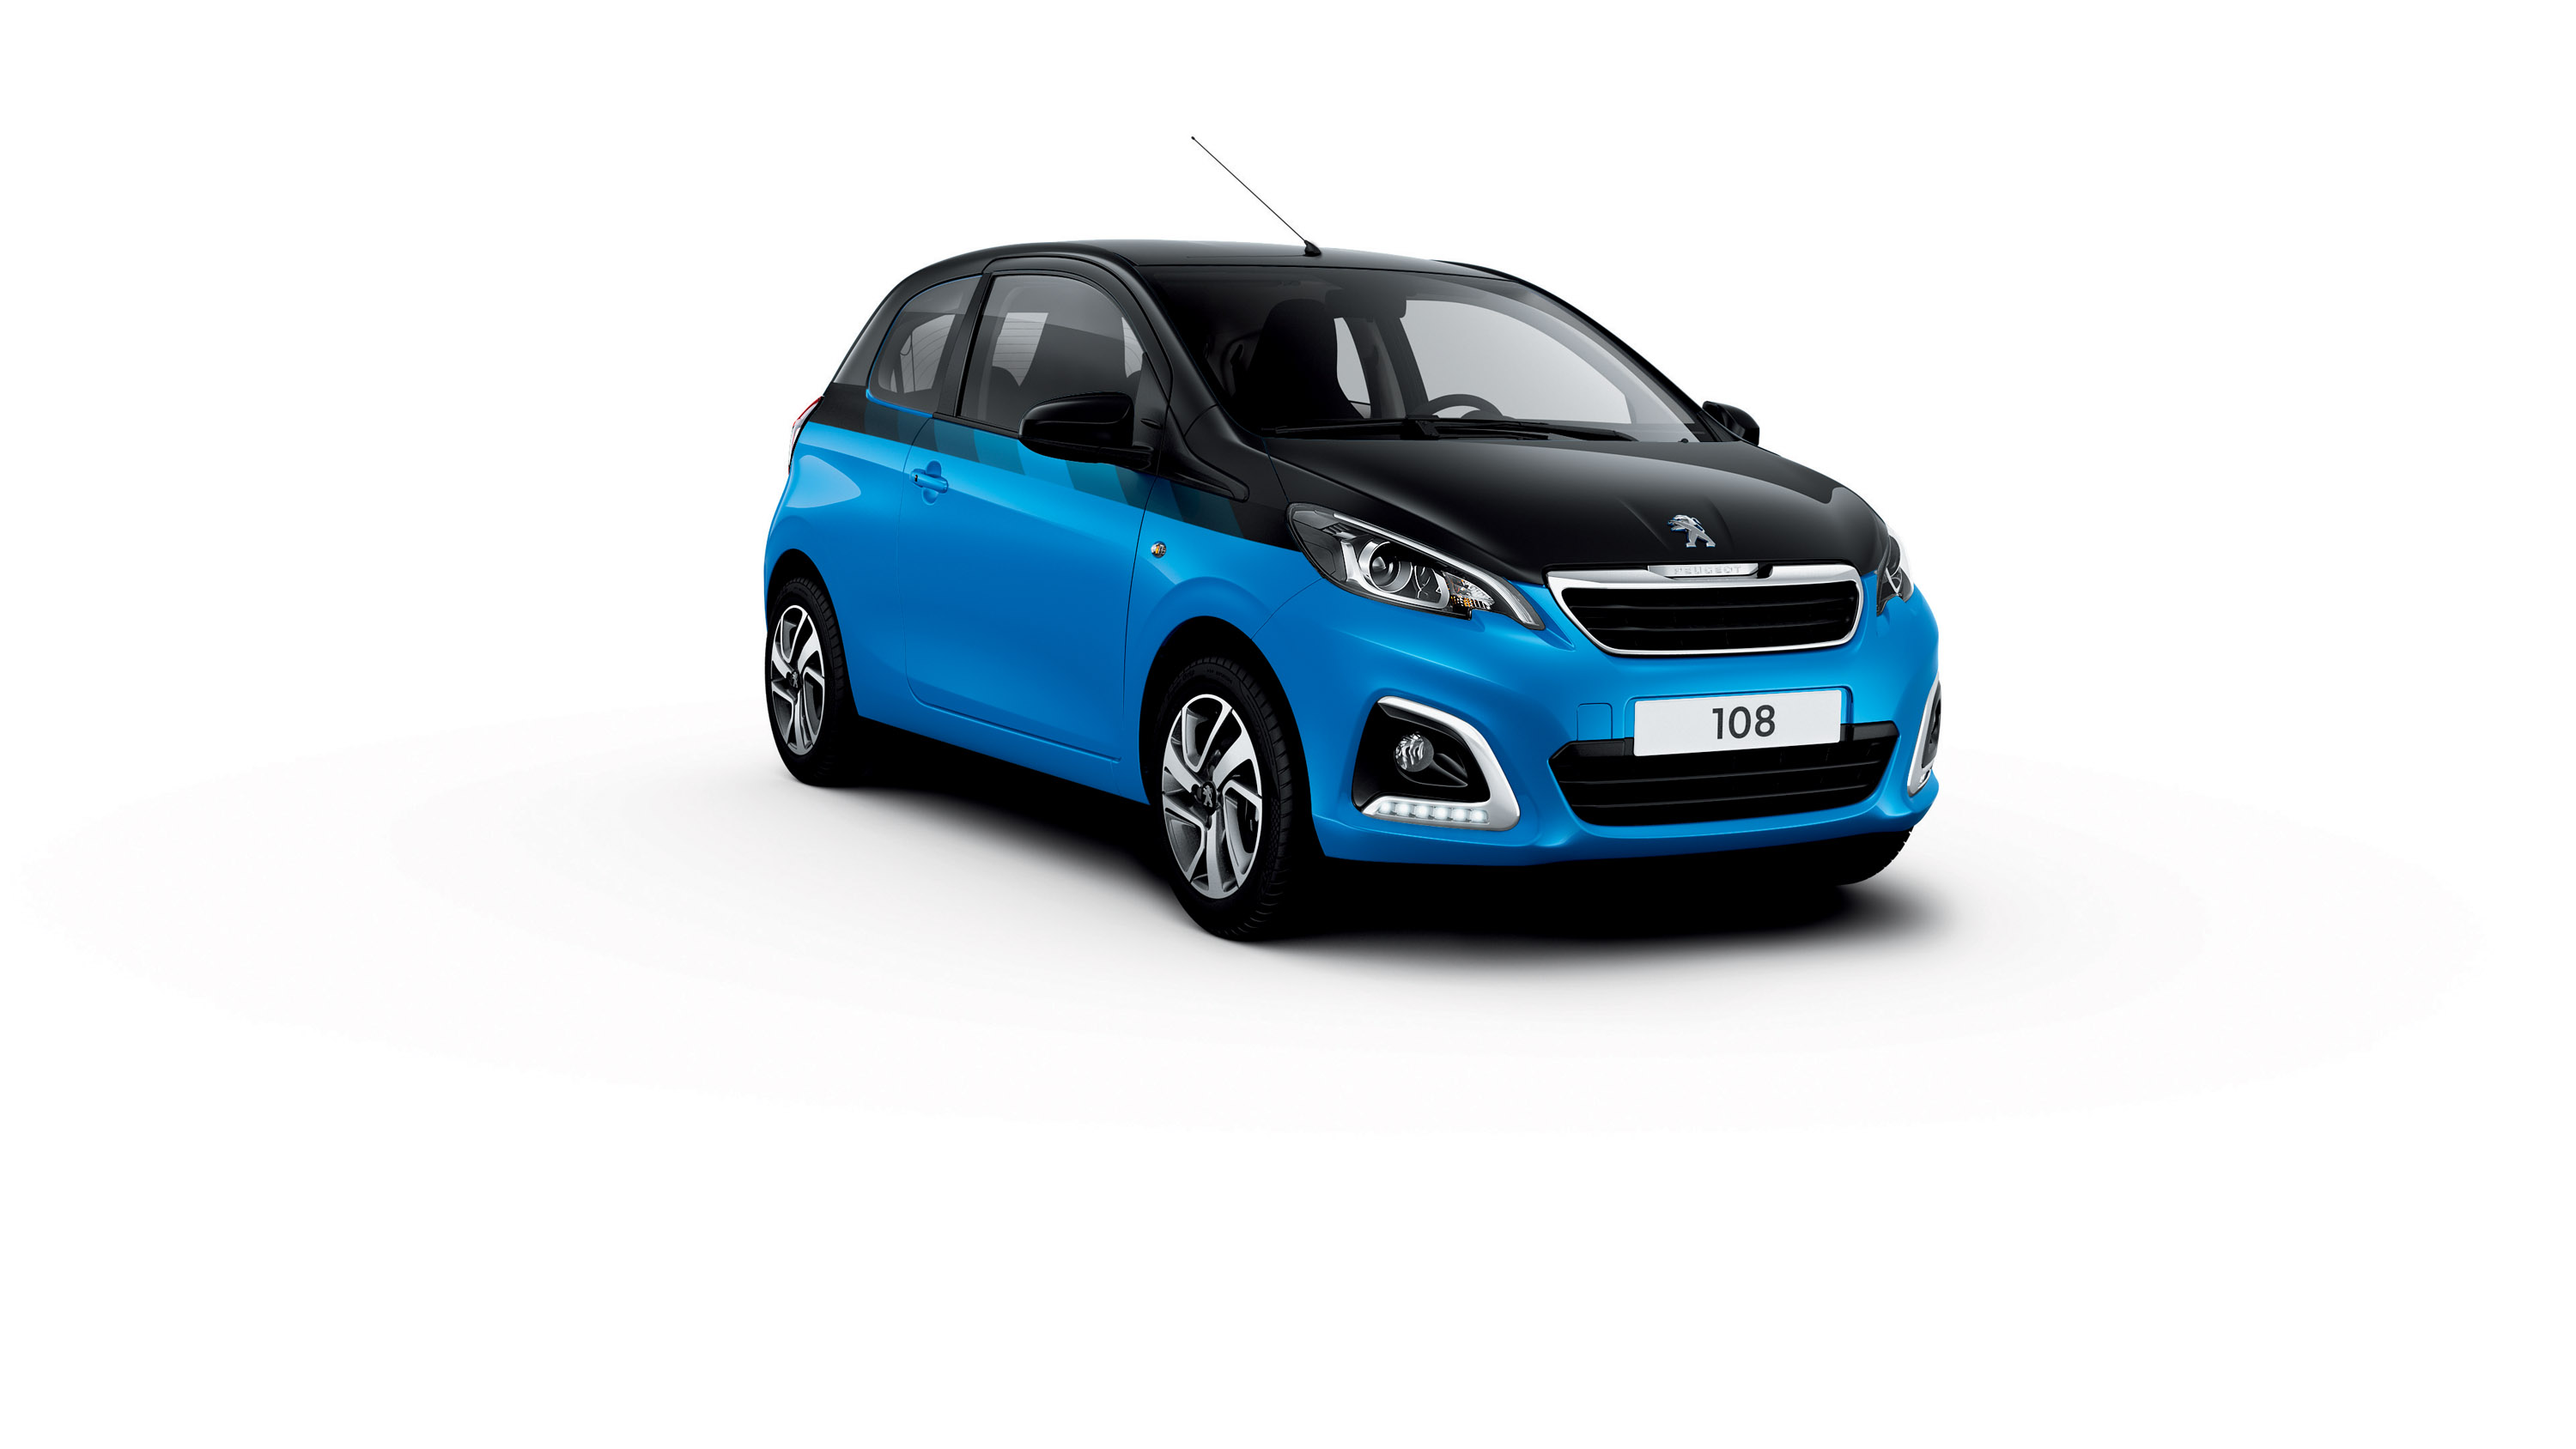 Peugeot 108 Comes With Sweeter Looks And Improved Performance